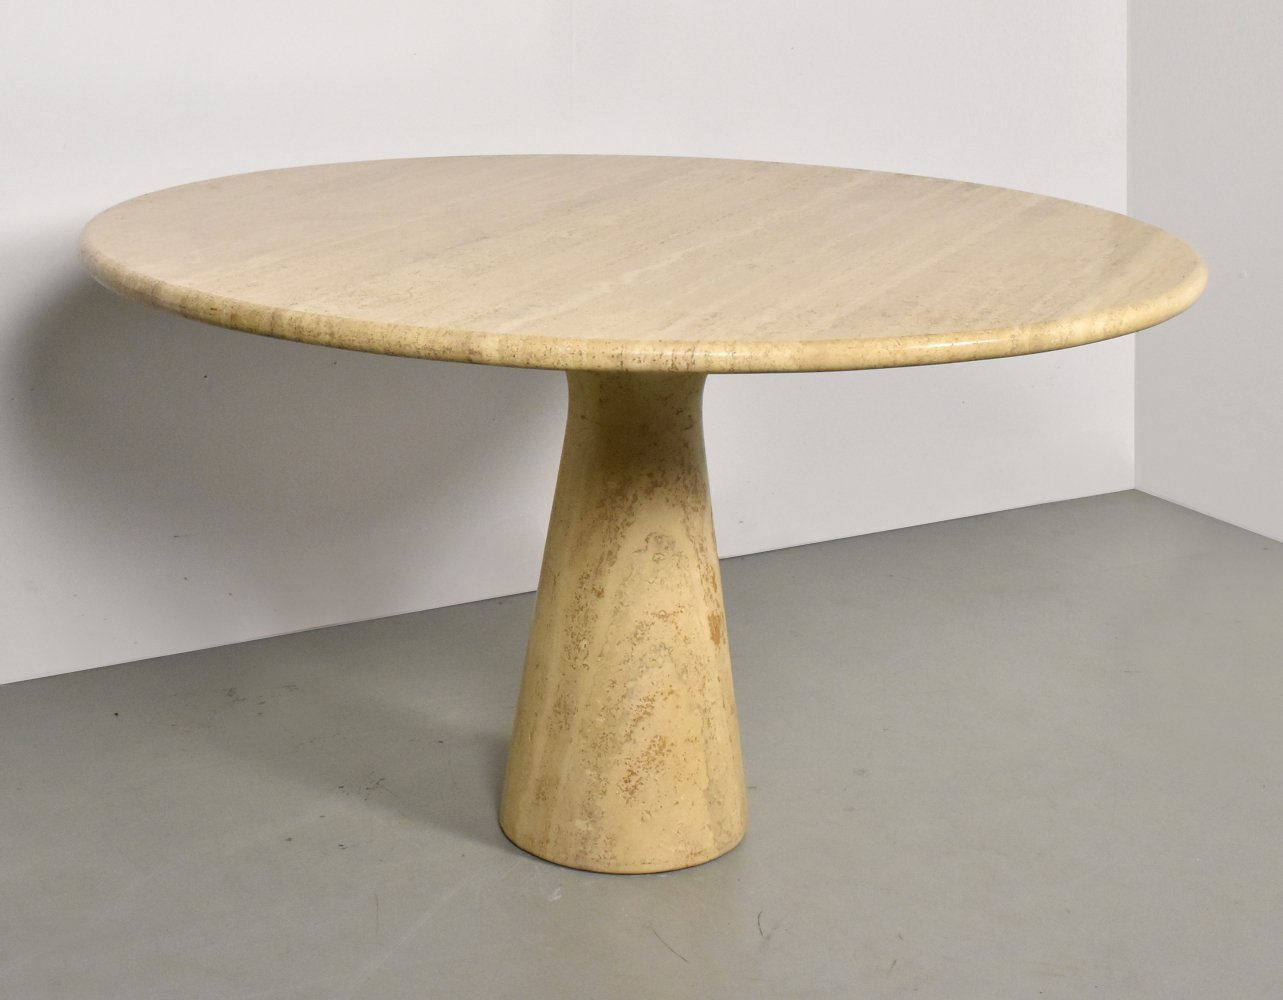 Travertine dining table, Italy 1970s